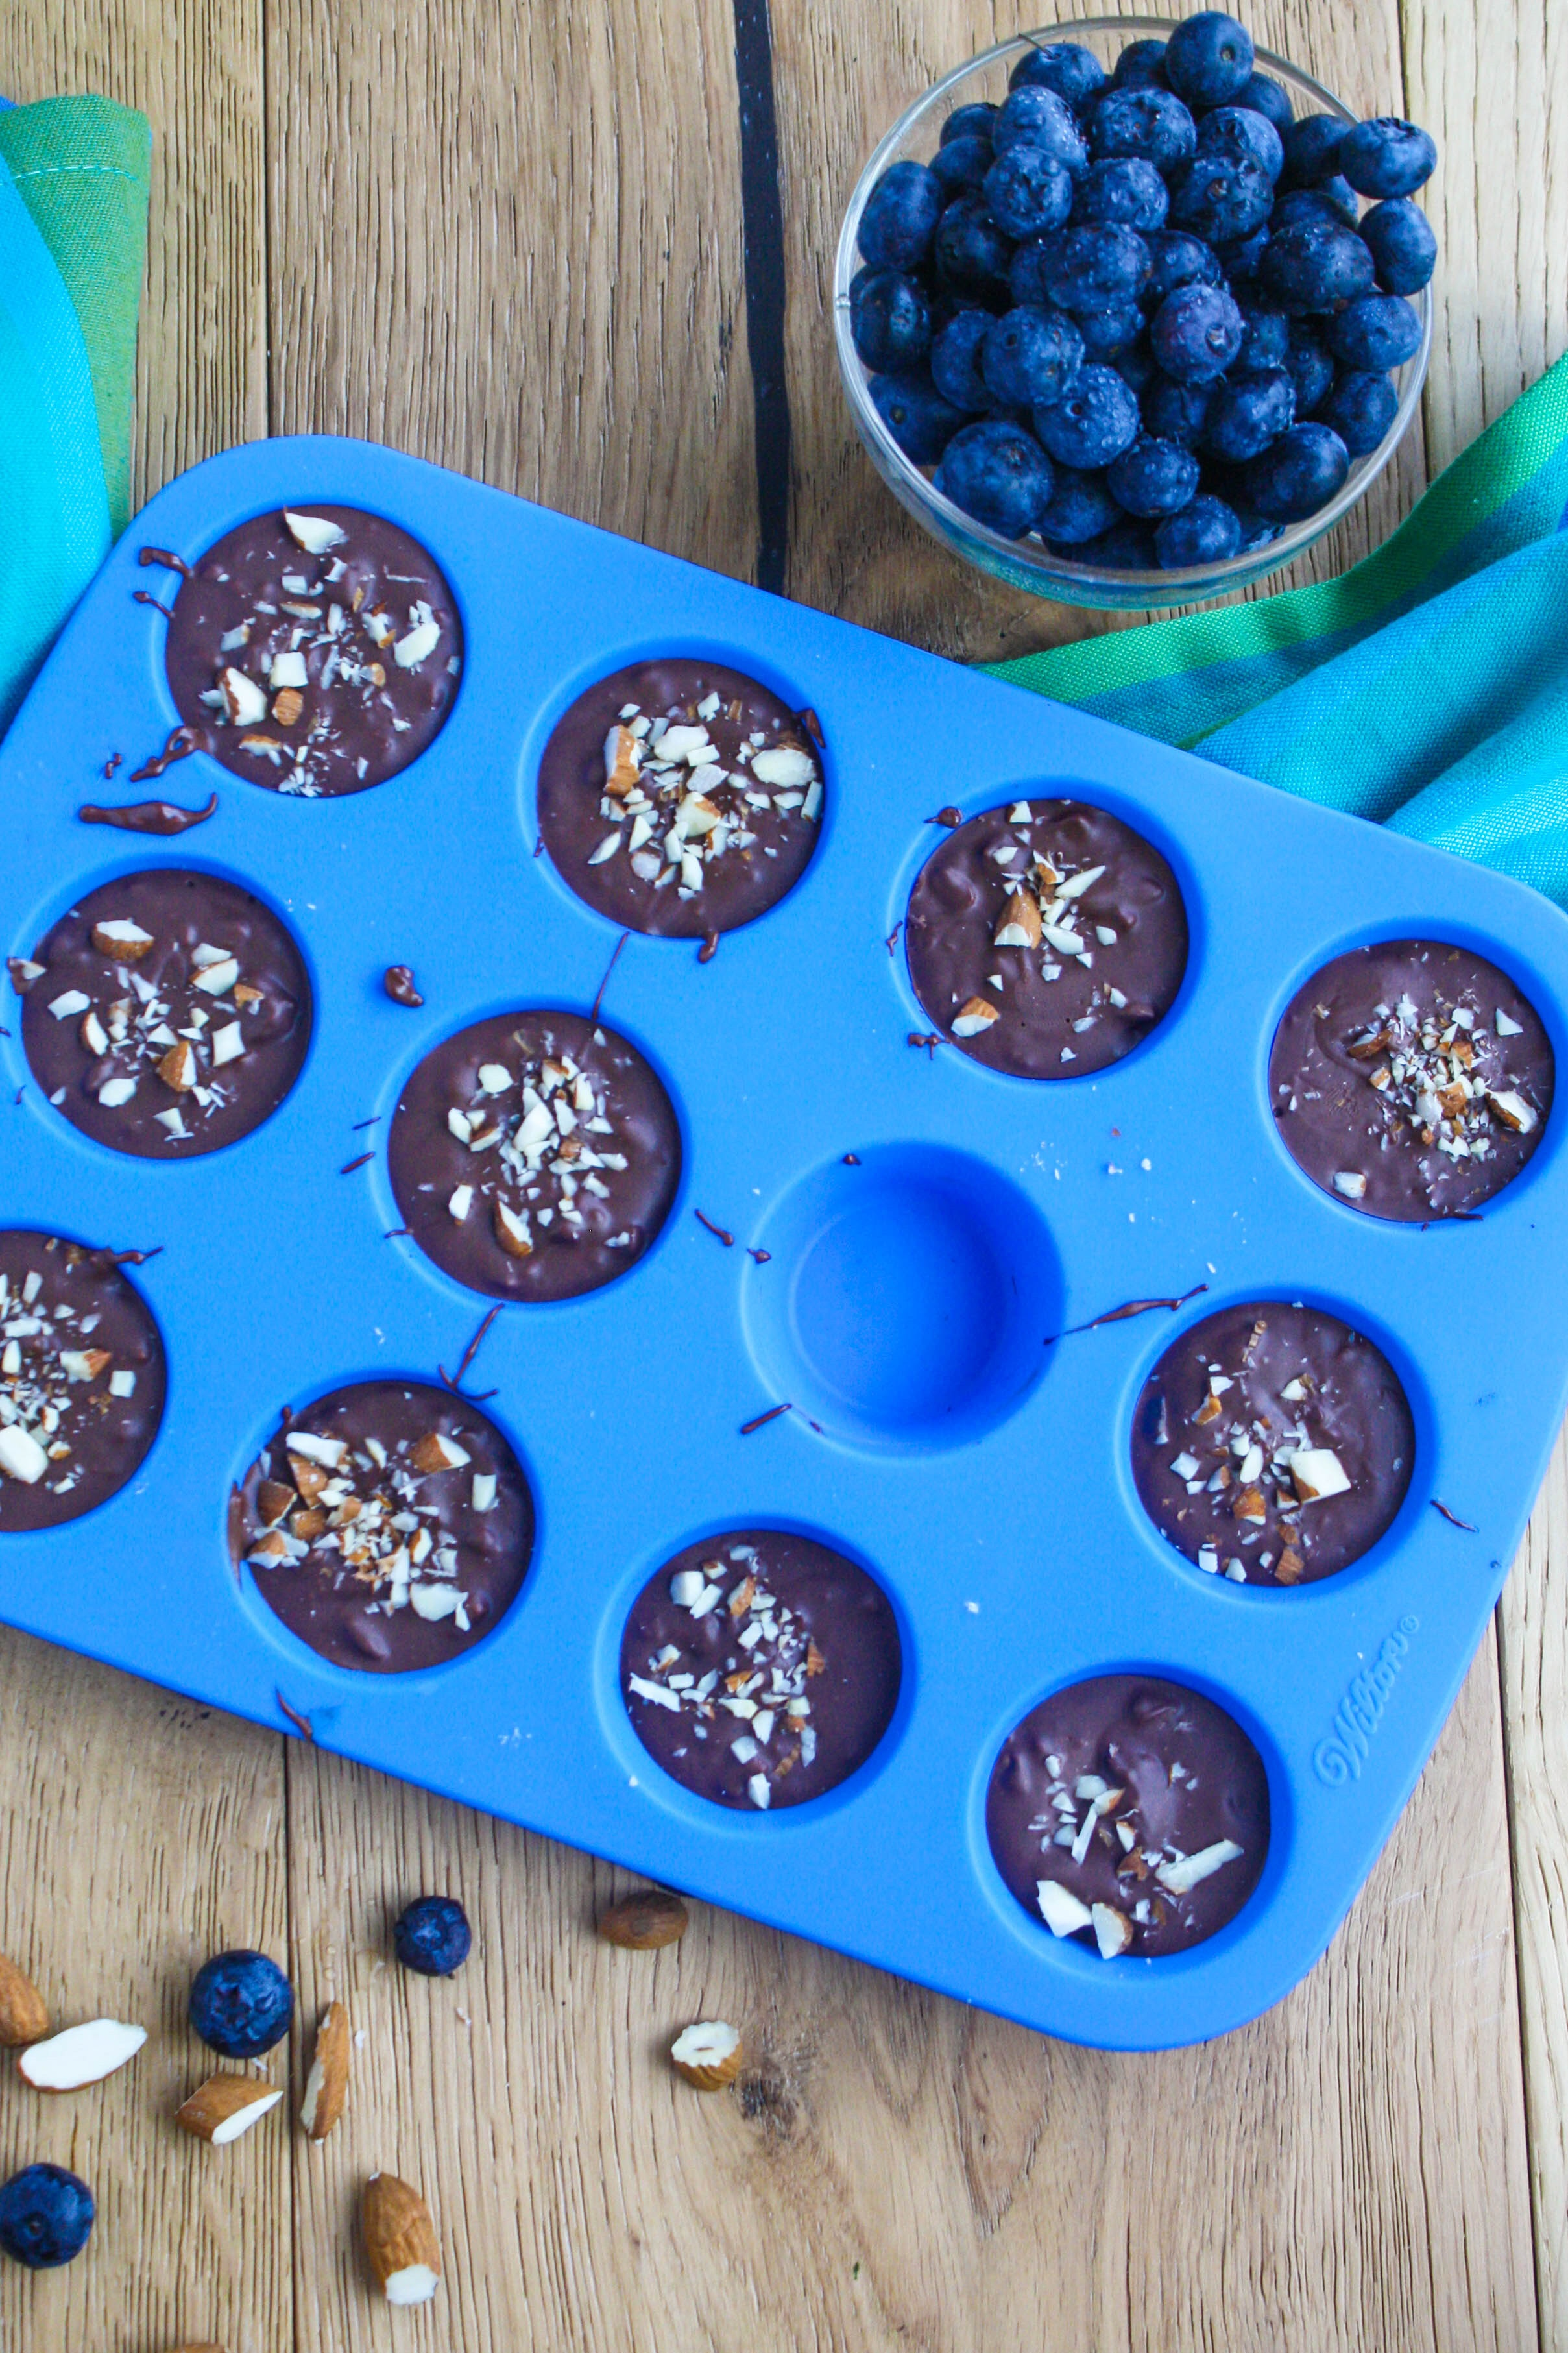 Chocolate Almond Blueberry Bites are a fun candy to make. They're so tasty for a great treat!